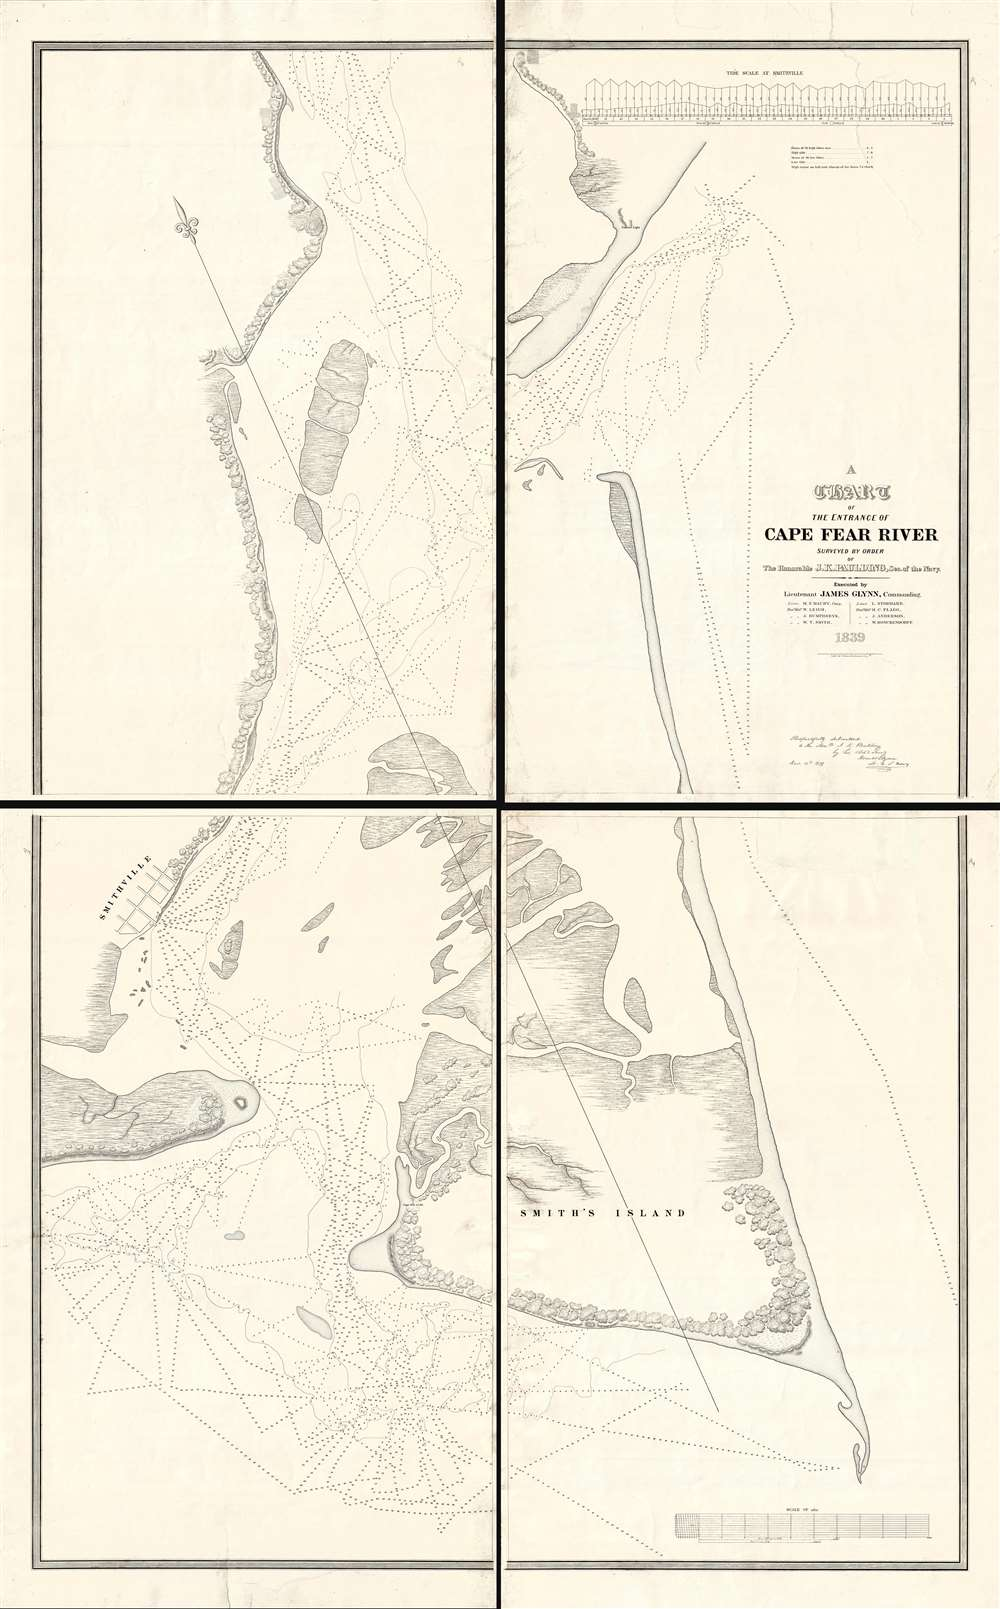 A Chart of the Entrance of Cape Fear River.